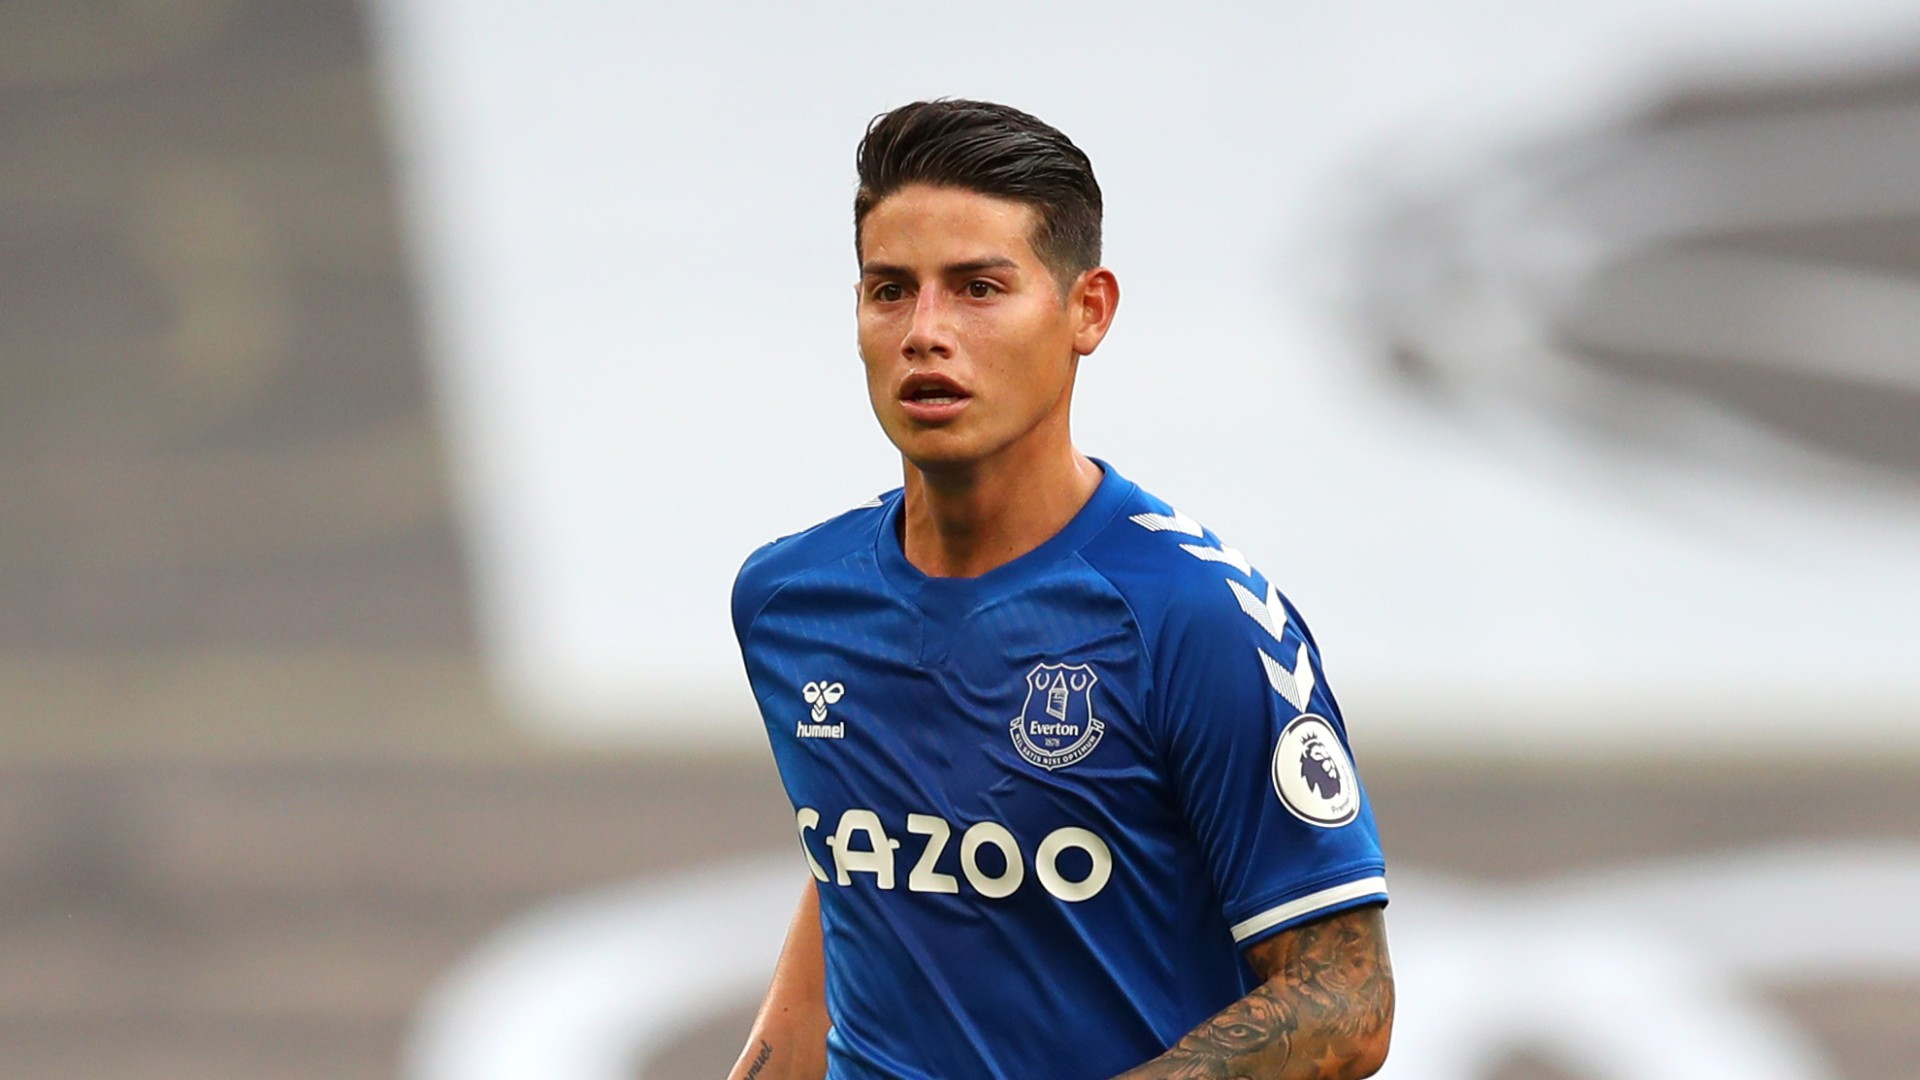 Everton predicted lineup vs Brighton. Where is James Rodriguez two gameweeks into the season?